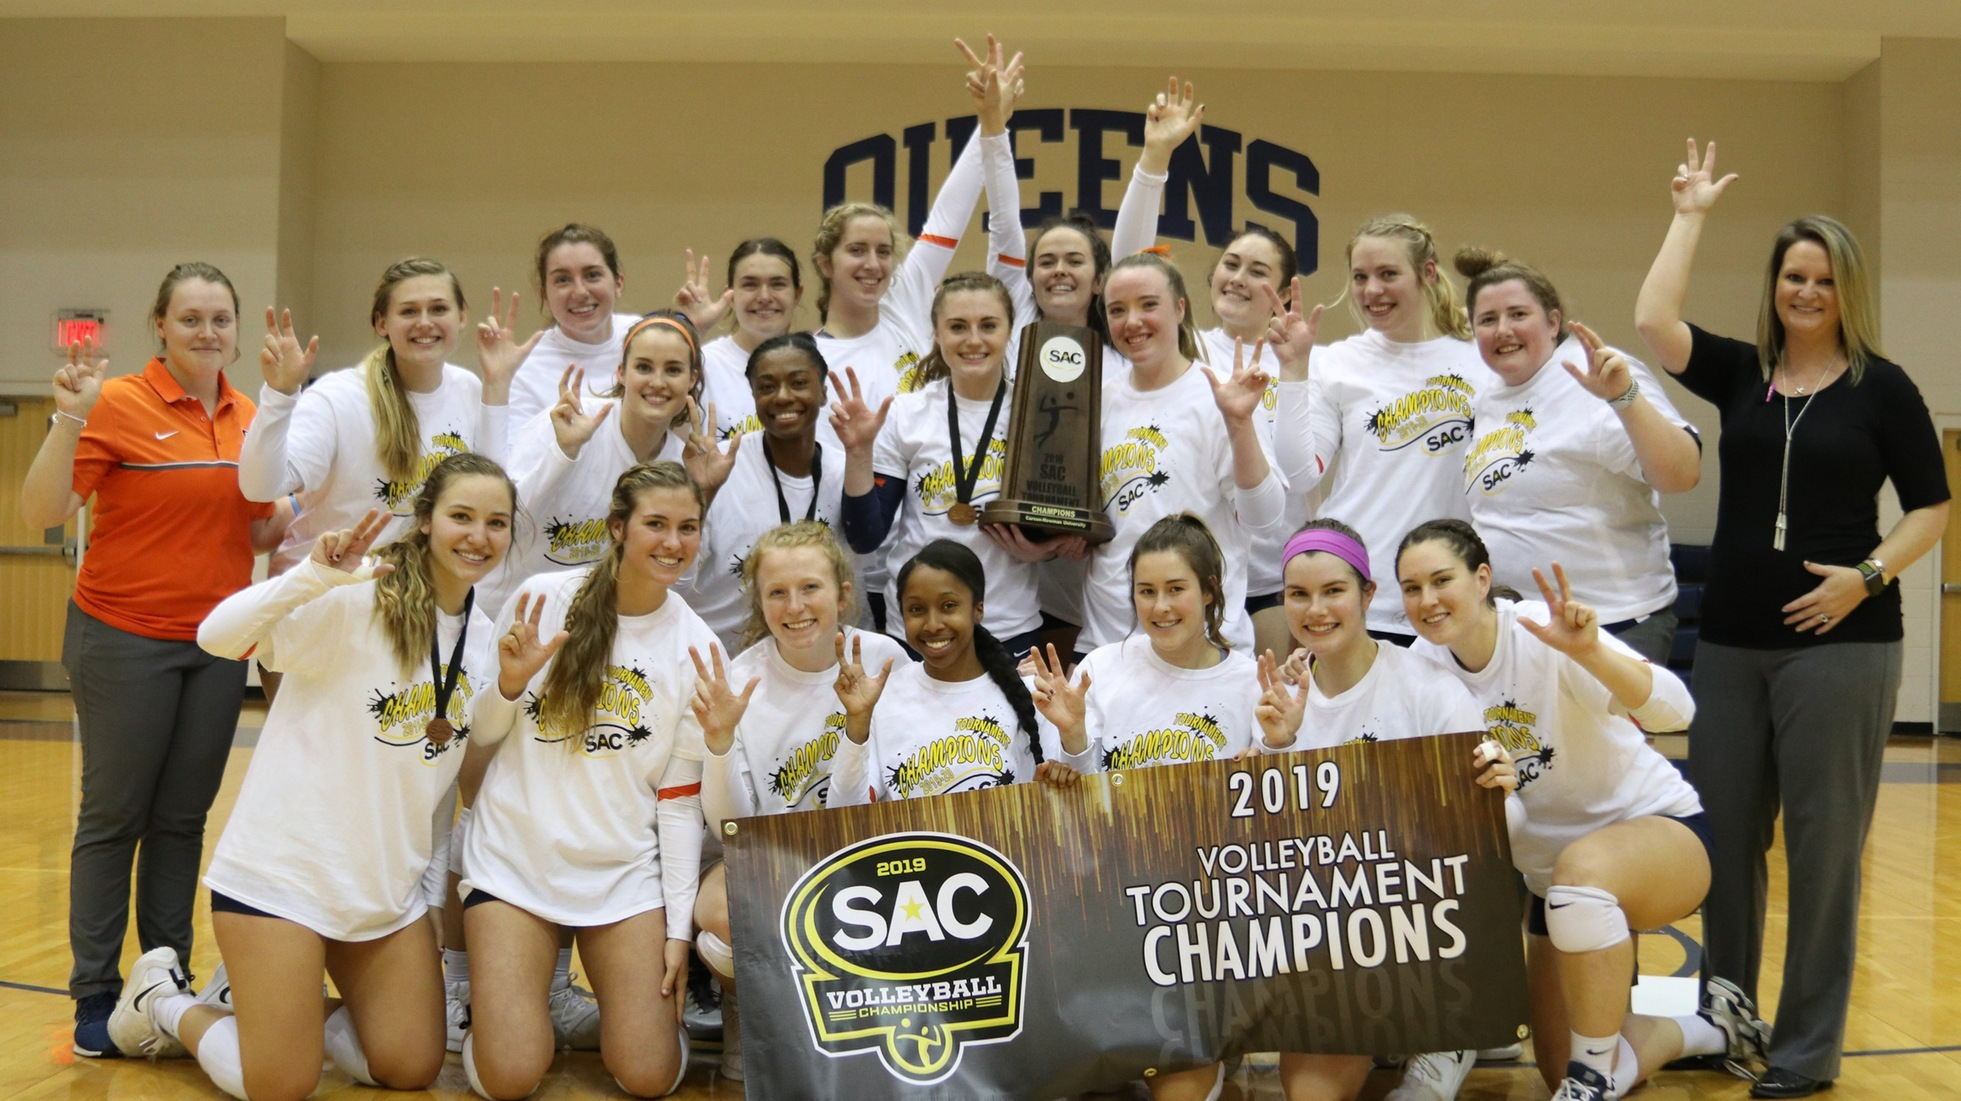 Eagles earn SAC Championship for third time in program history